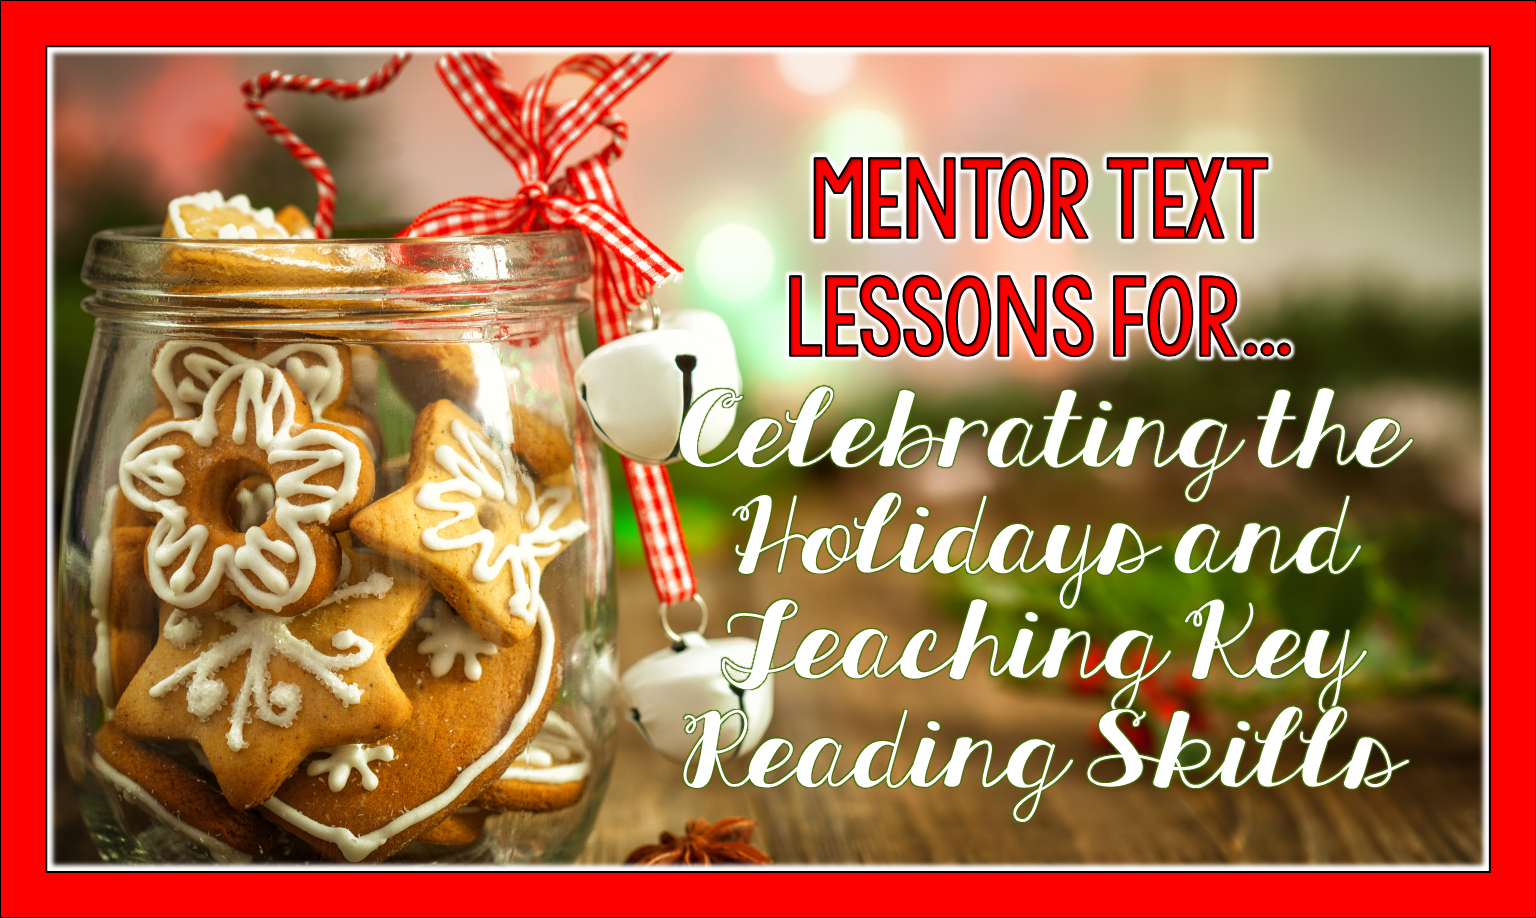 With the holidays, it can be challenging to balance keeping to the curriculum and keeping kids engaged. Mentor text lessons are a great choice for getting both jobs done. Check out this post for go-to lessons you can use this month.